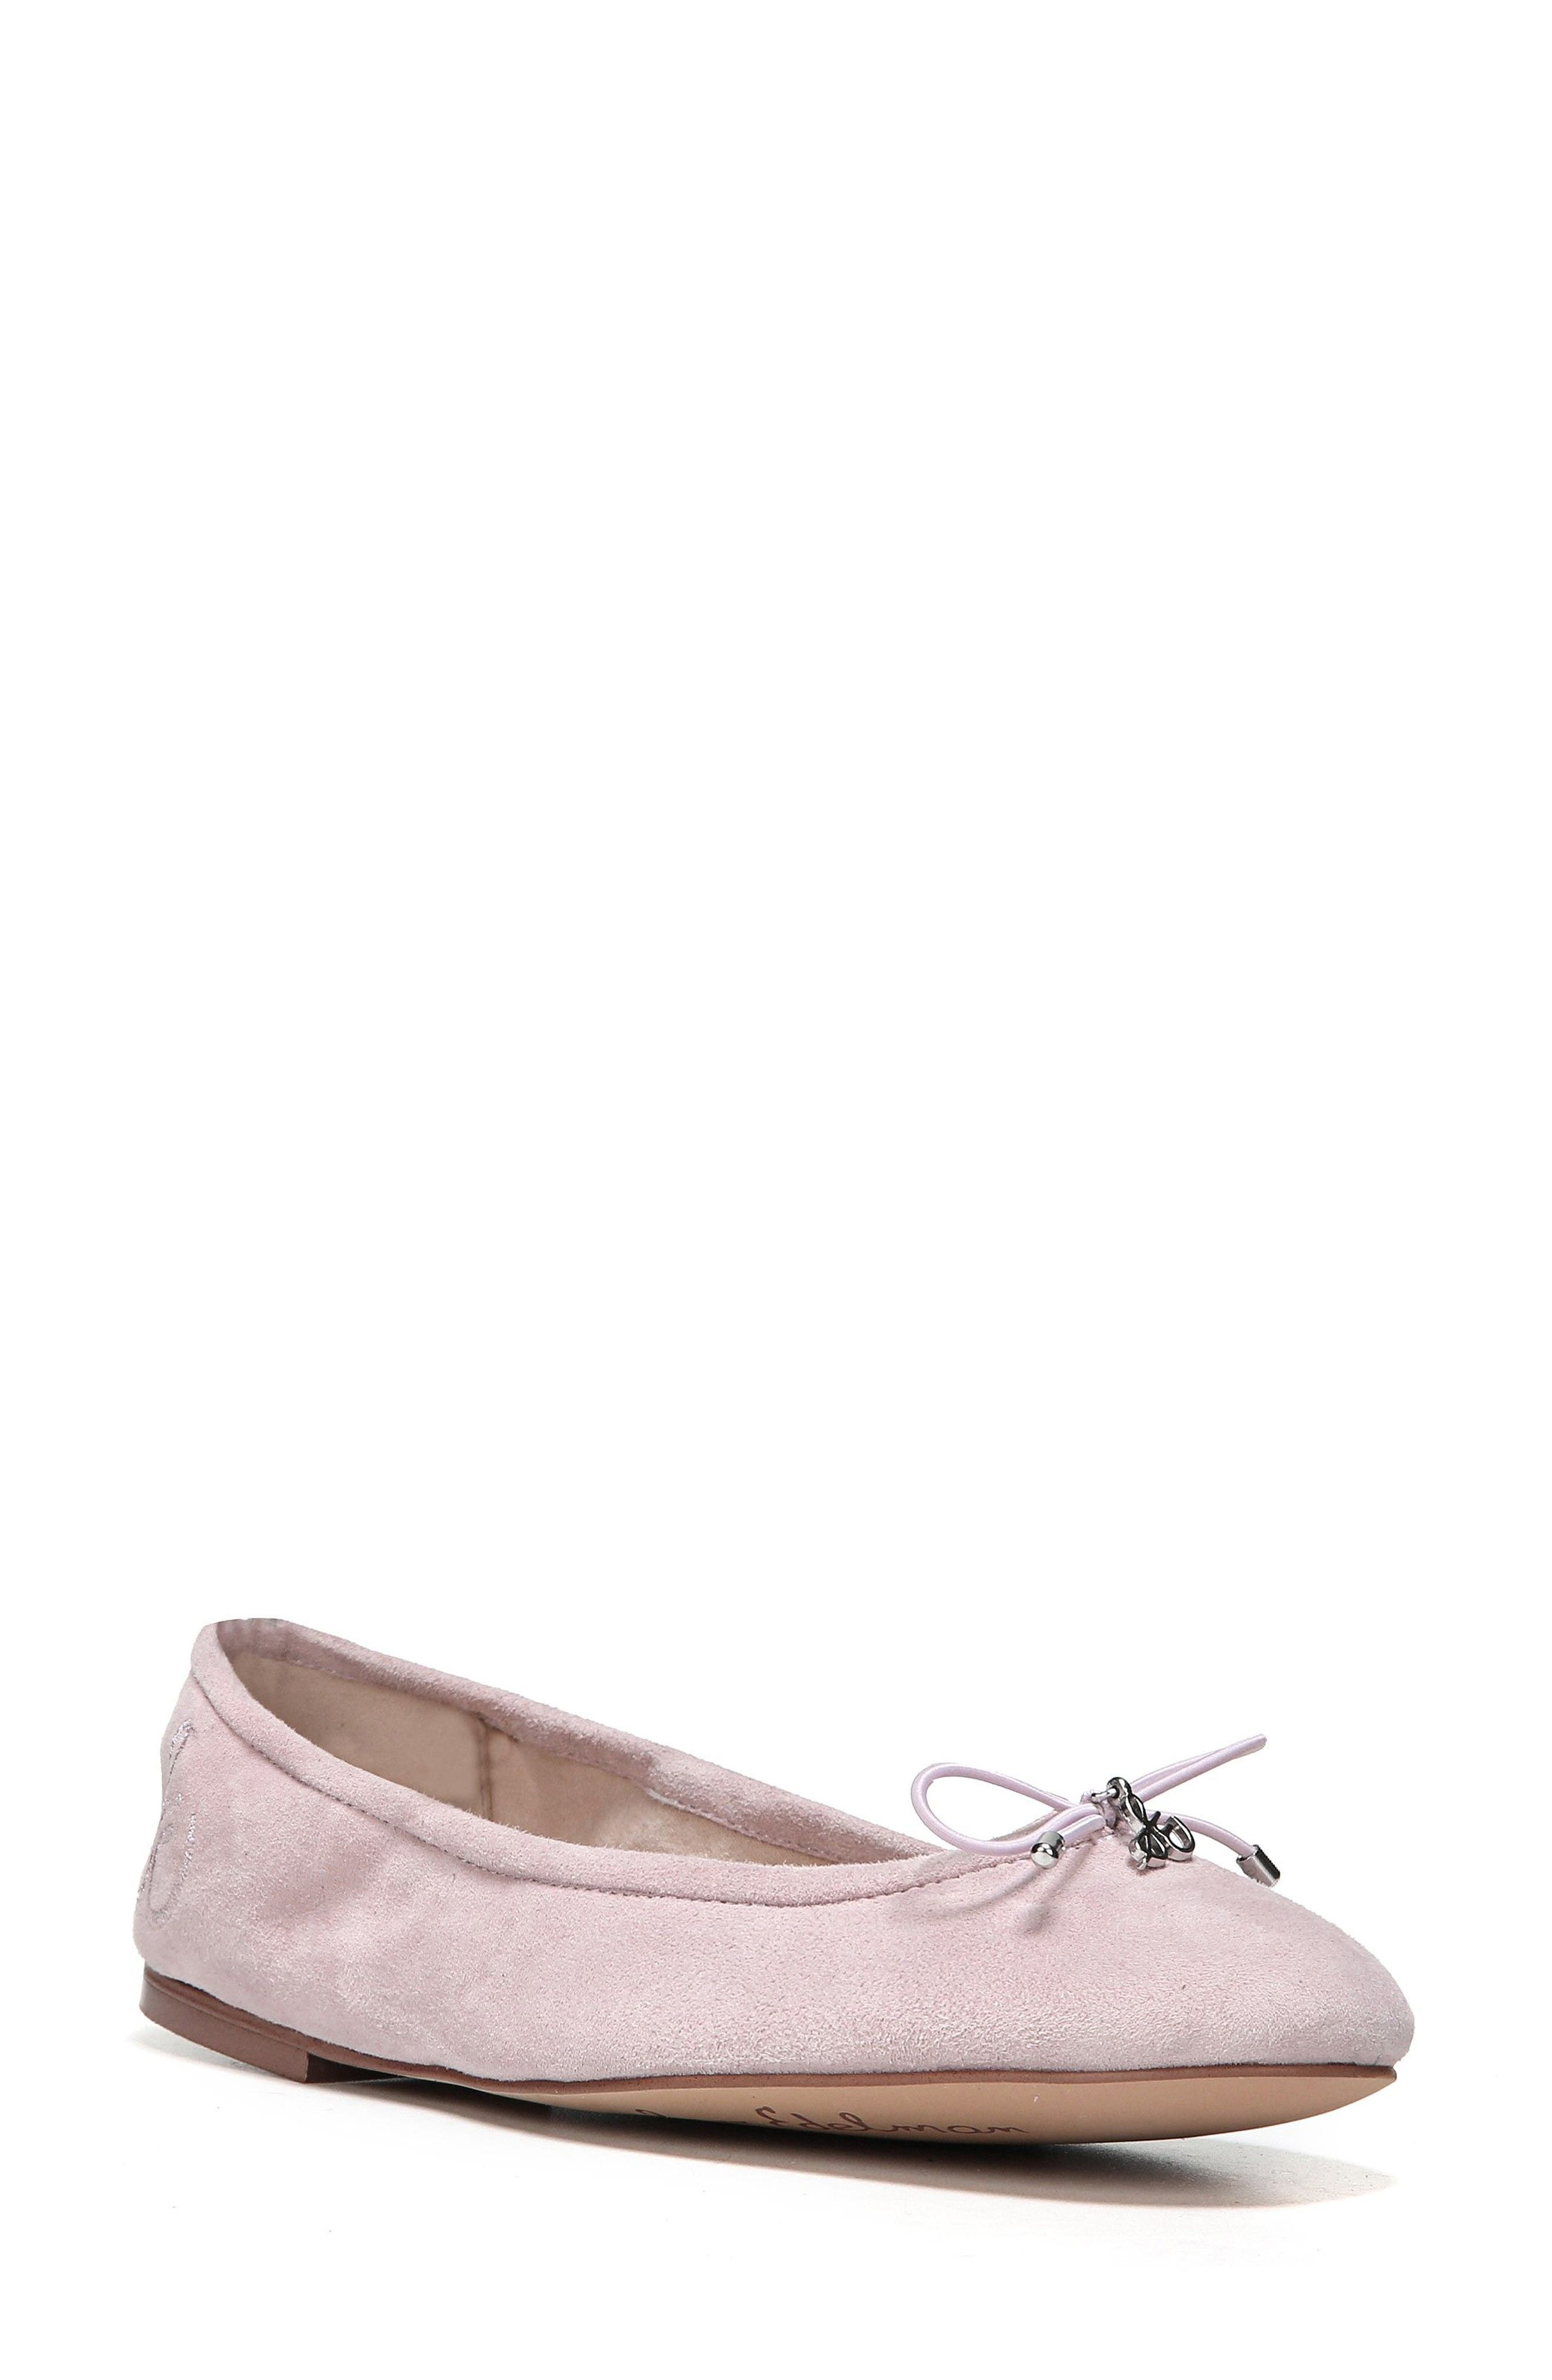 Felicia Flat,                             Main thumbnail 1, color,                             Pearl Pink Suede